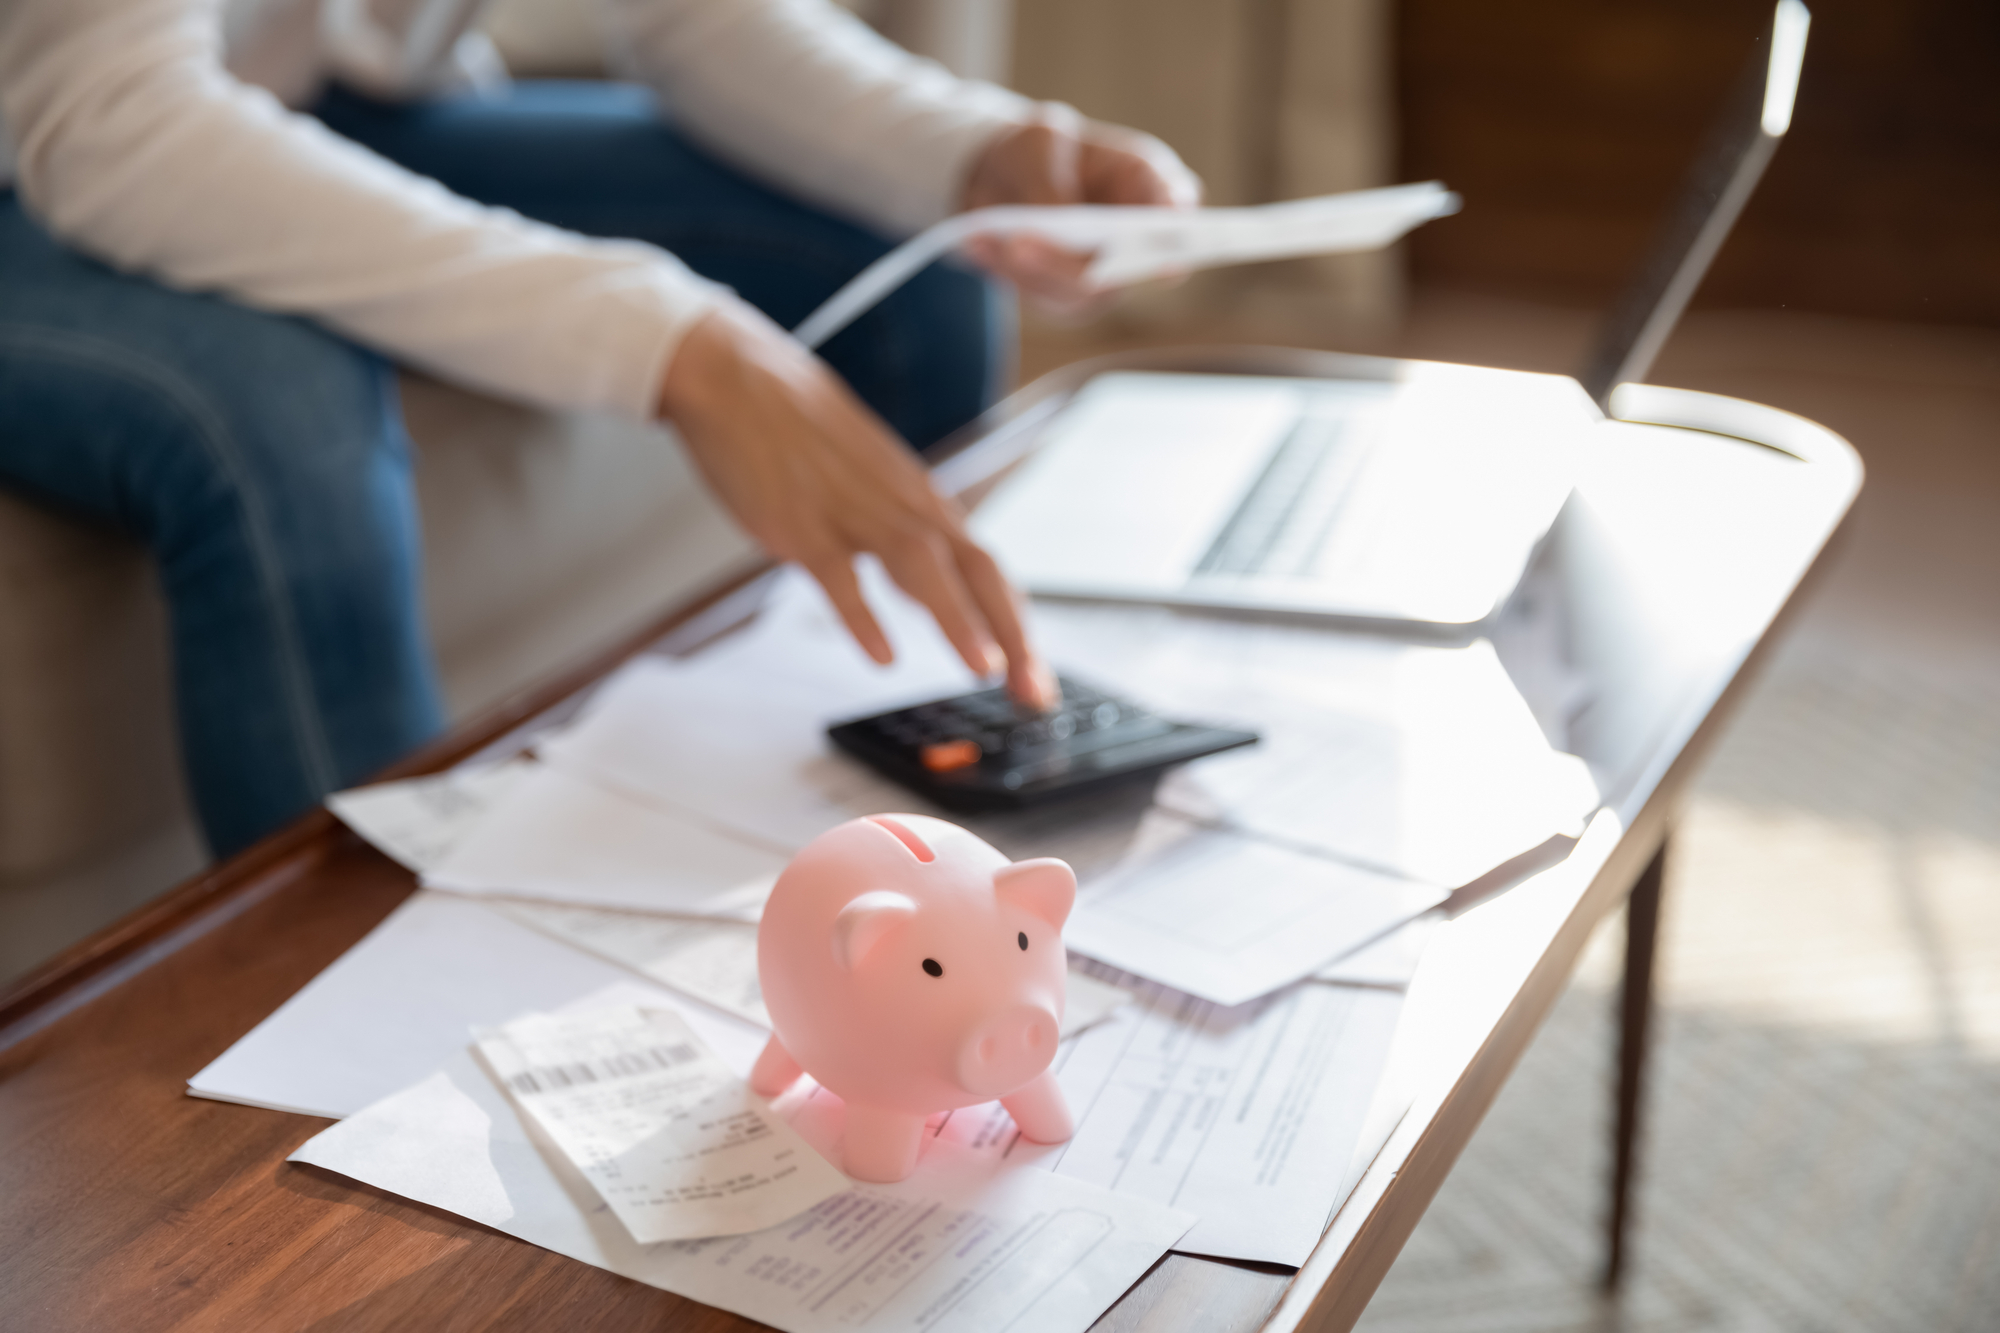 7 Easy Ways To Save Money On Household Expenses